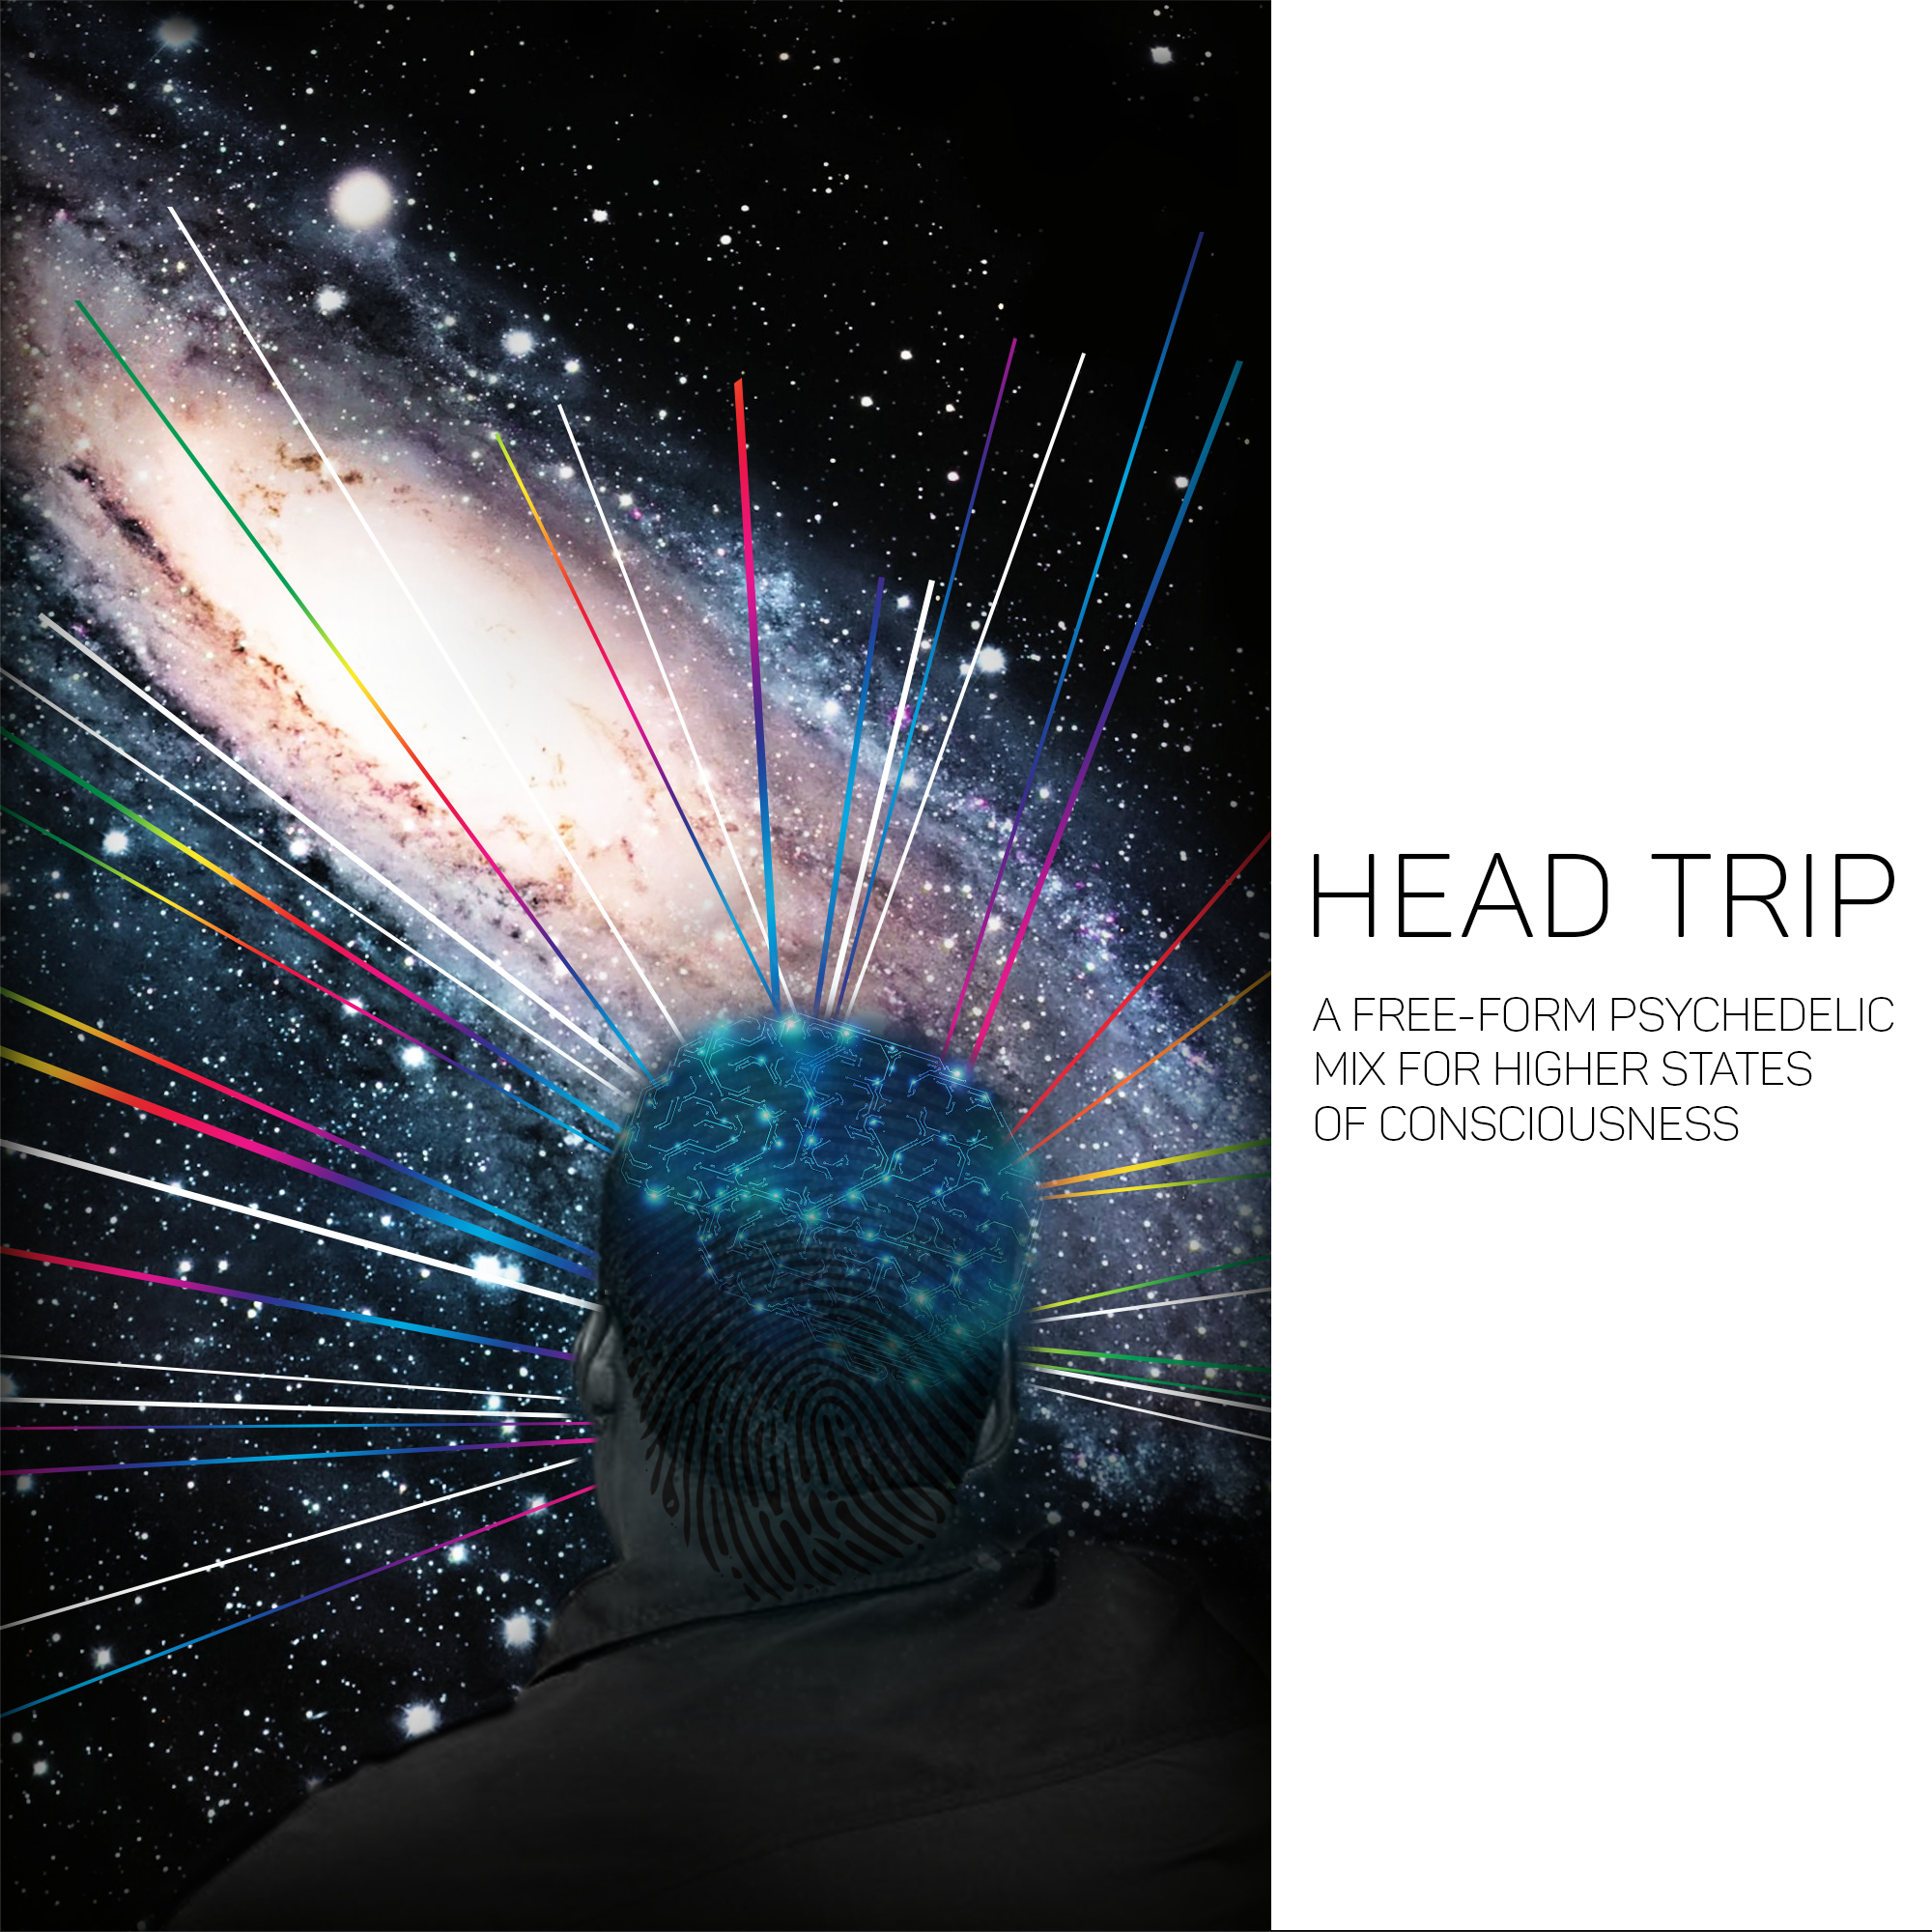 We have a new playlist: Head Trip (A Free Form Psychedelic Mix for Higher States Of Consciousness)